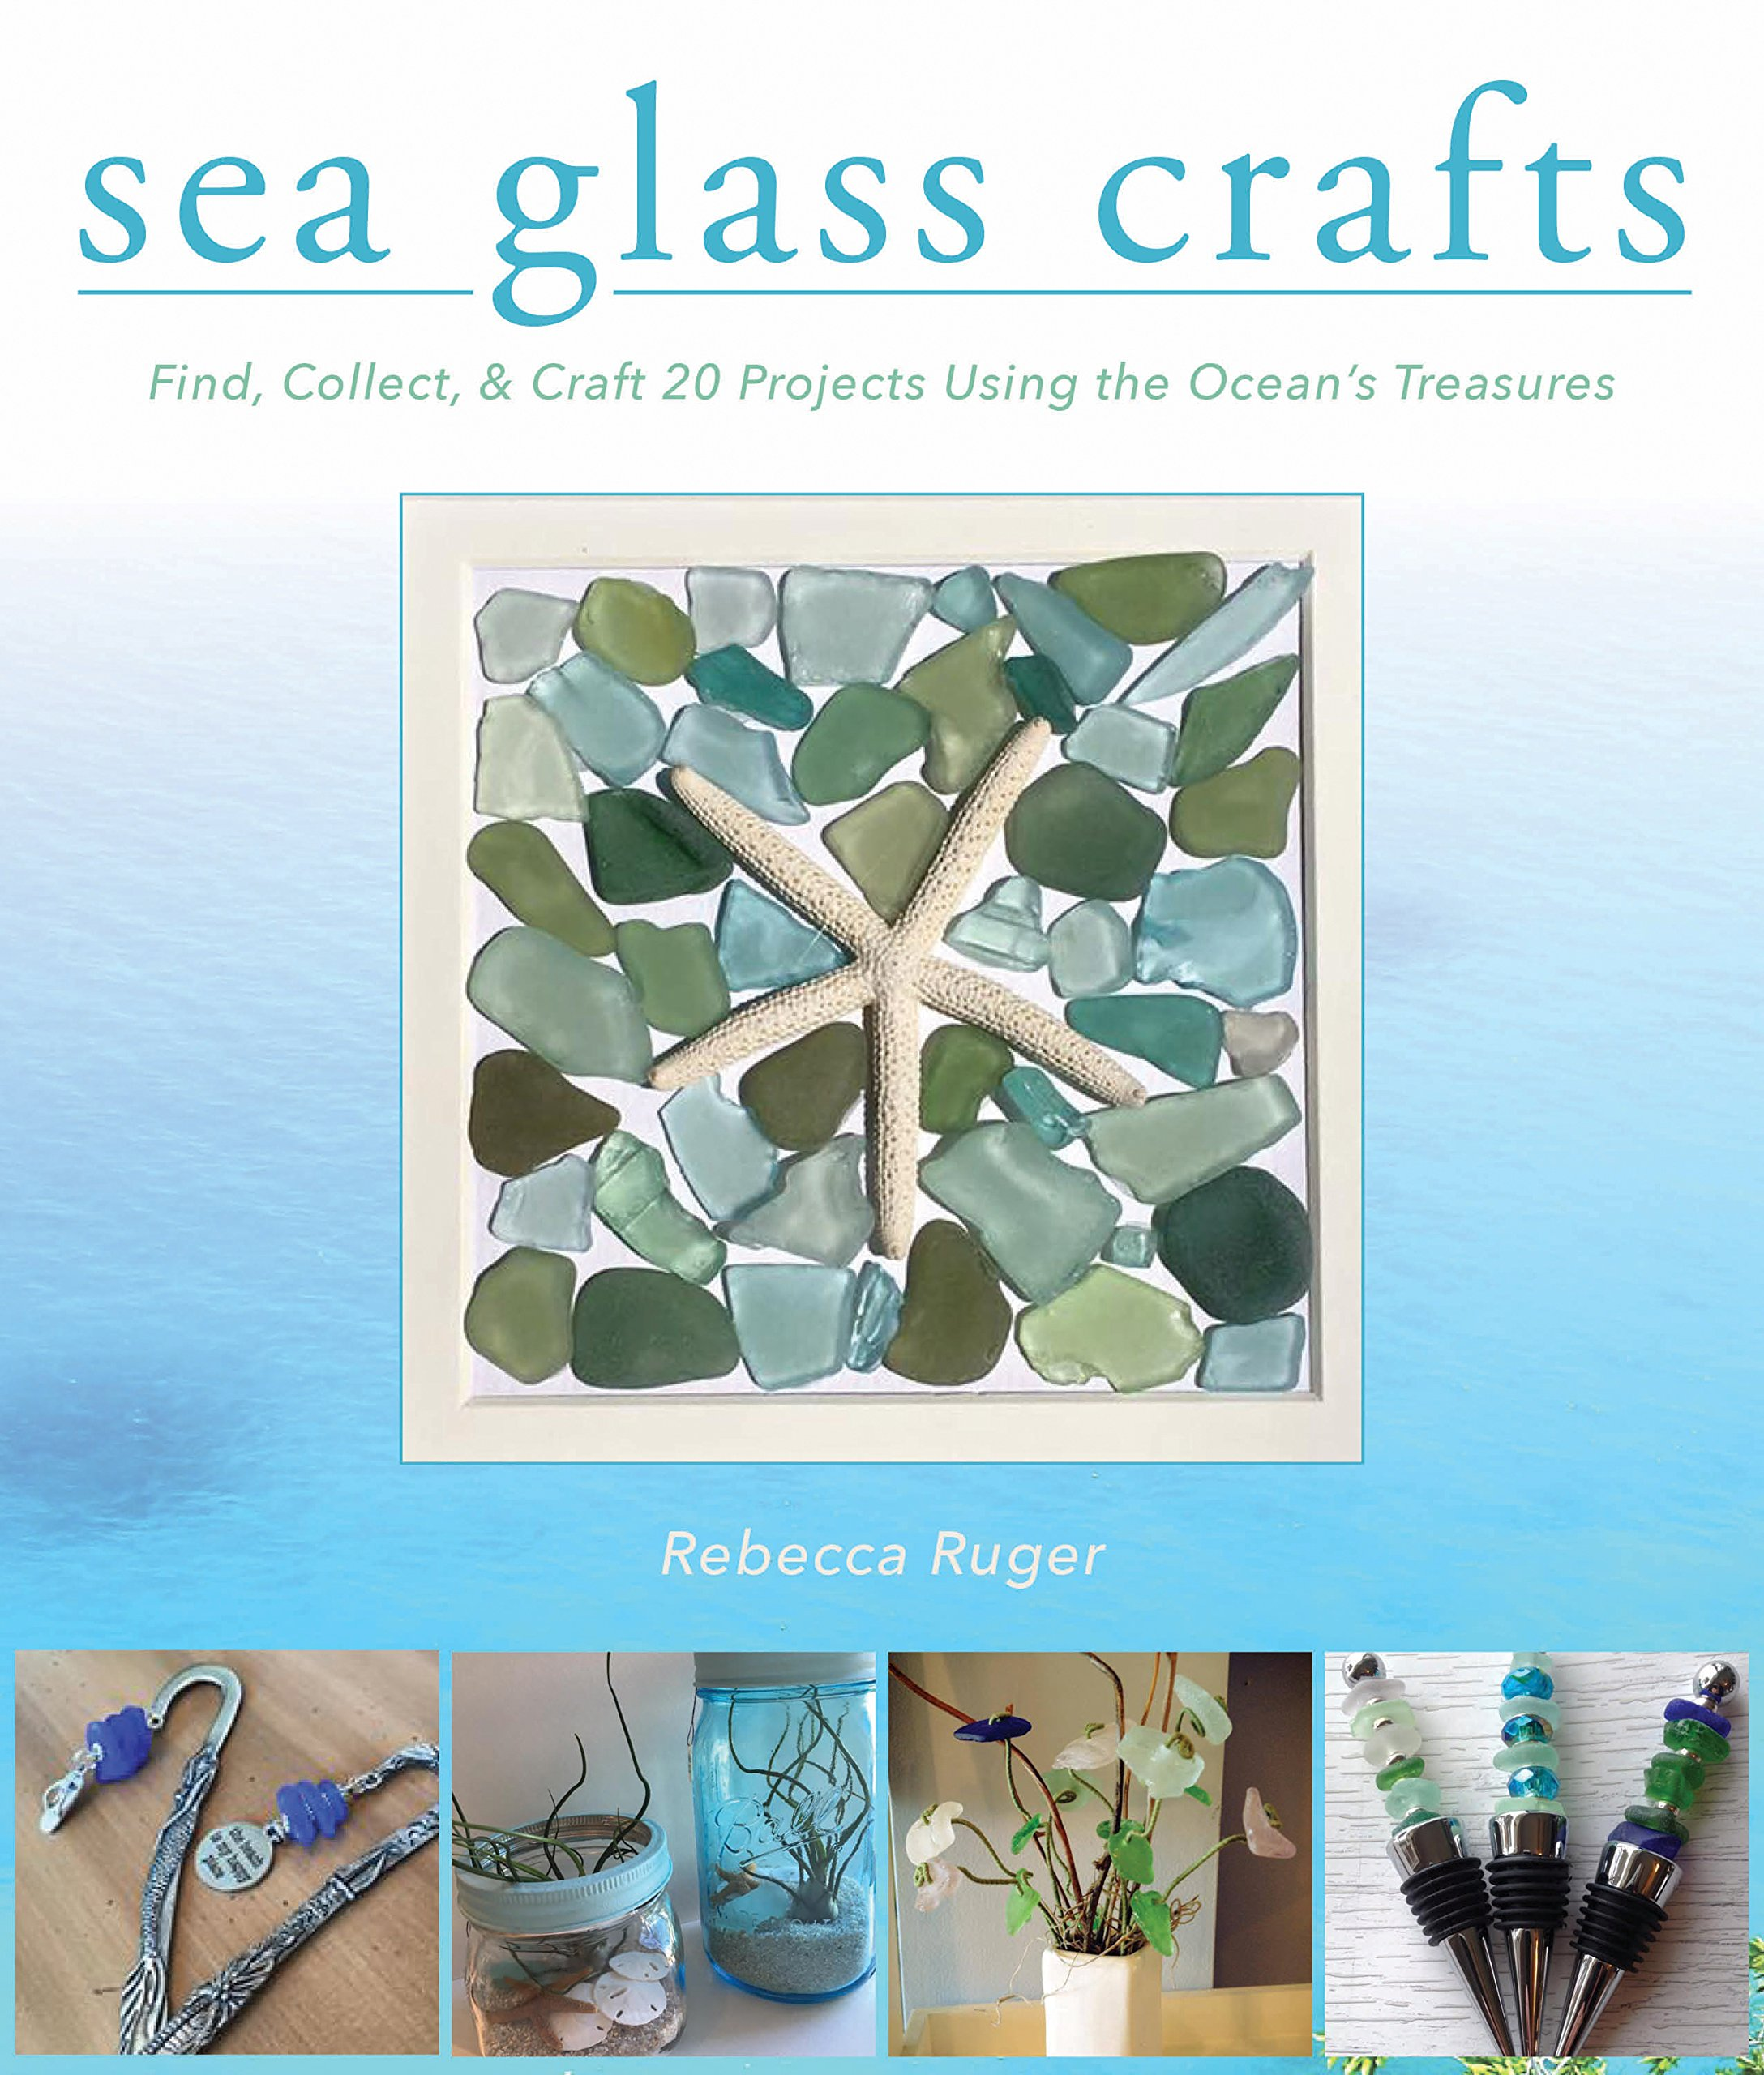 Sea Glass Crafts: Find, Collect, & Craft More Than 20 Projects Using the Ocean's Treasures